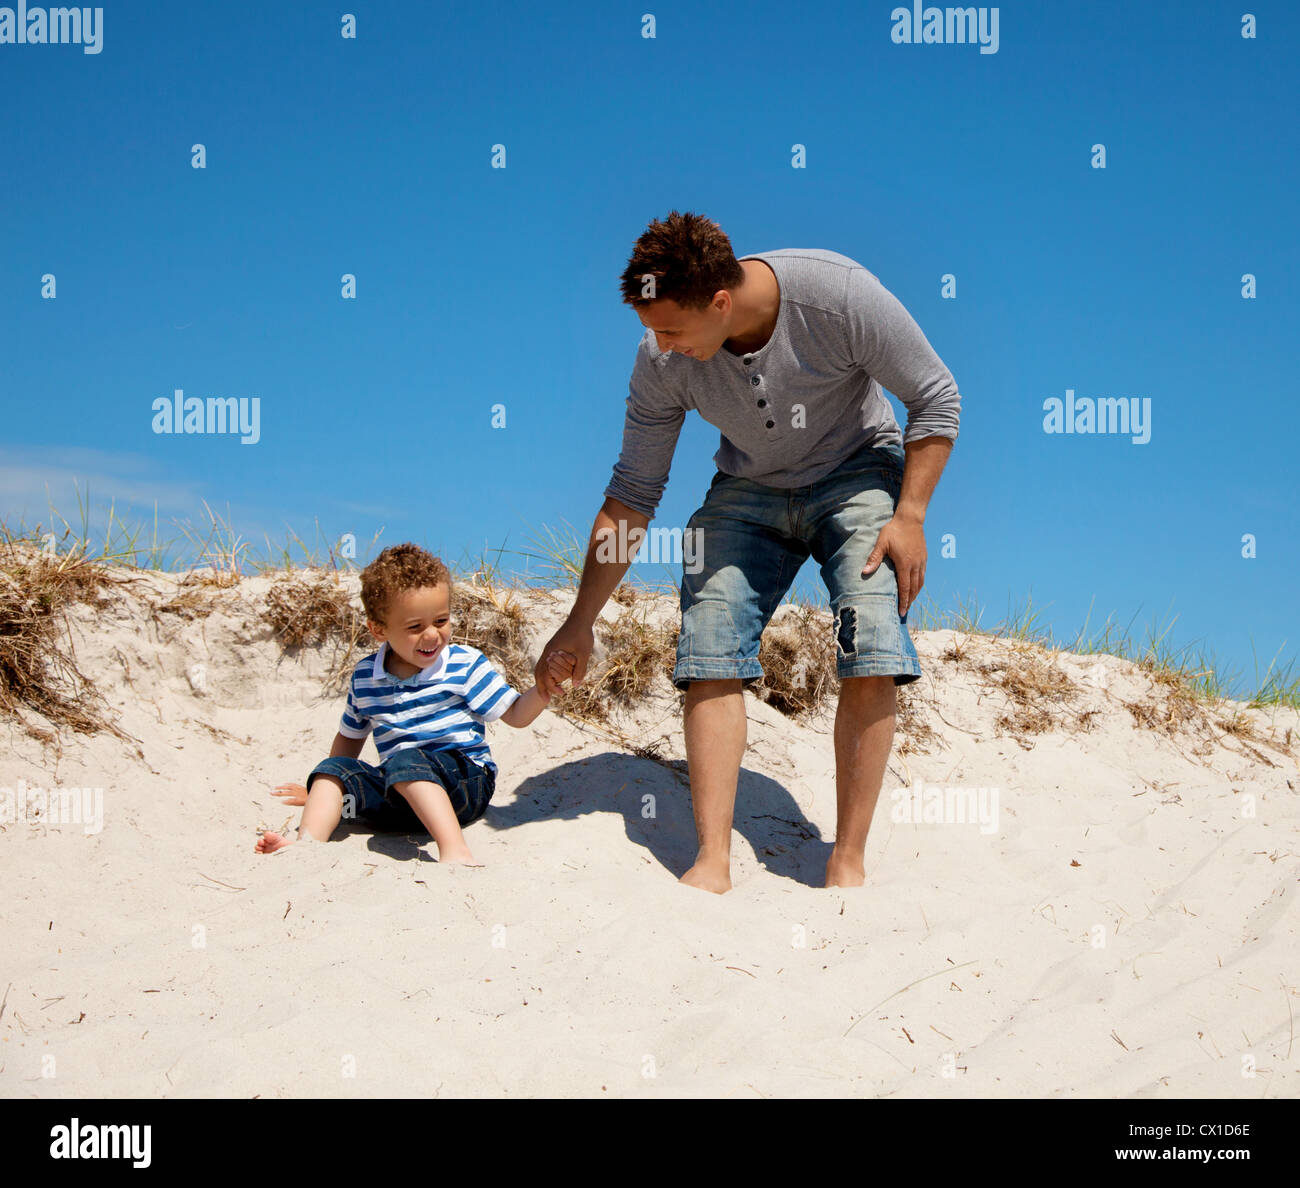 Dad and son enjoying and having fun on a sunny summer day Stock Photo